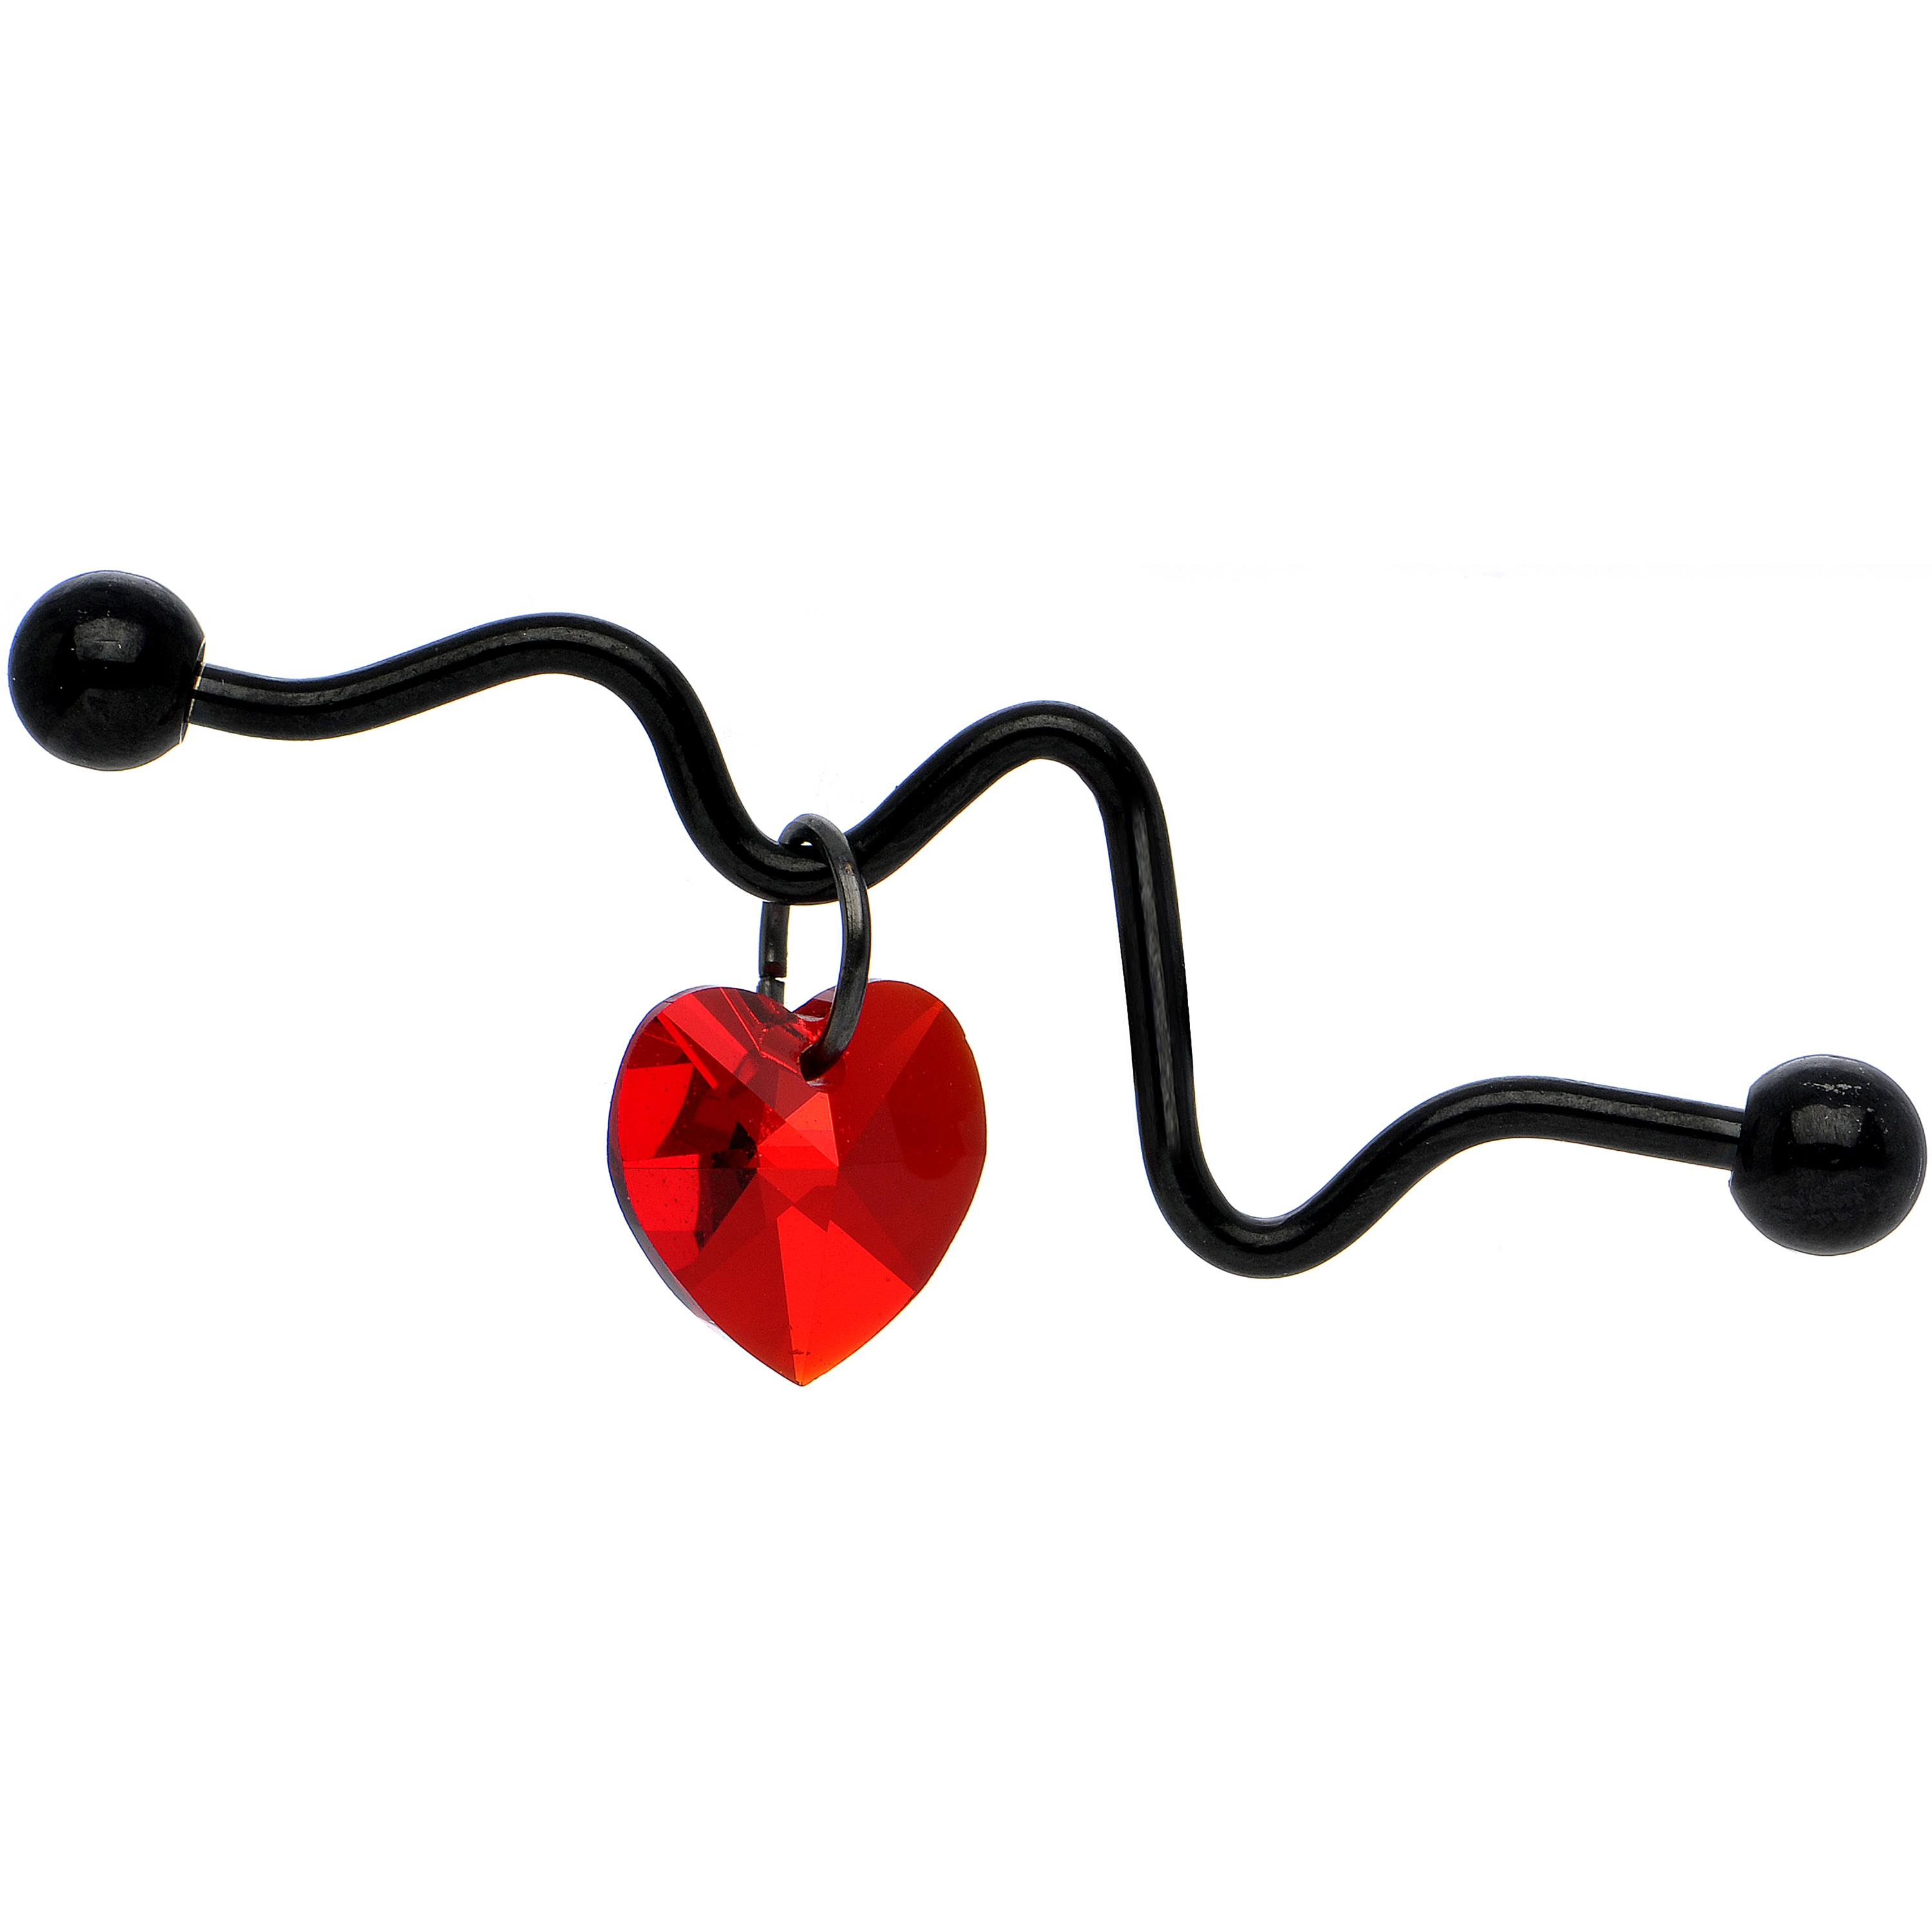 Body Candy Black Anodized Red Heartbeat Industrial Barbell Created with Swarovski Crystals 14 Gauge 38mm